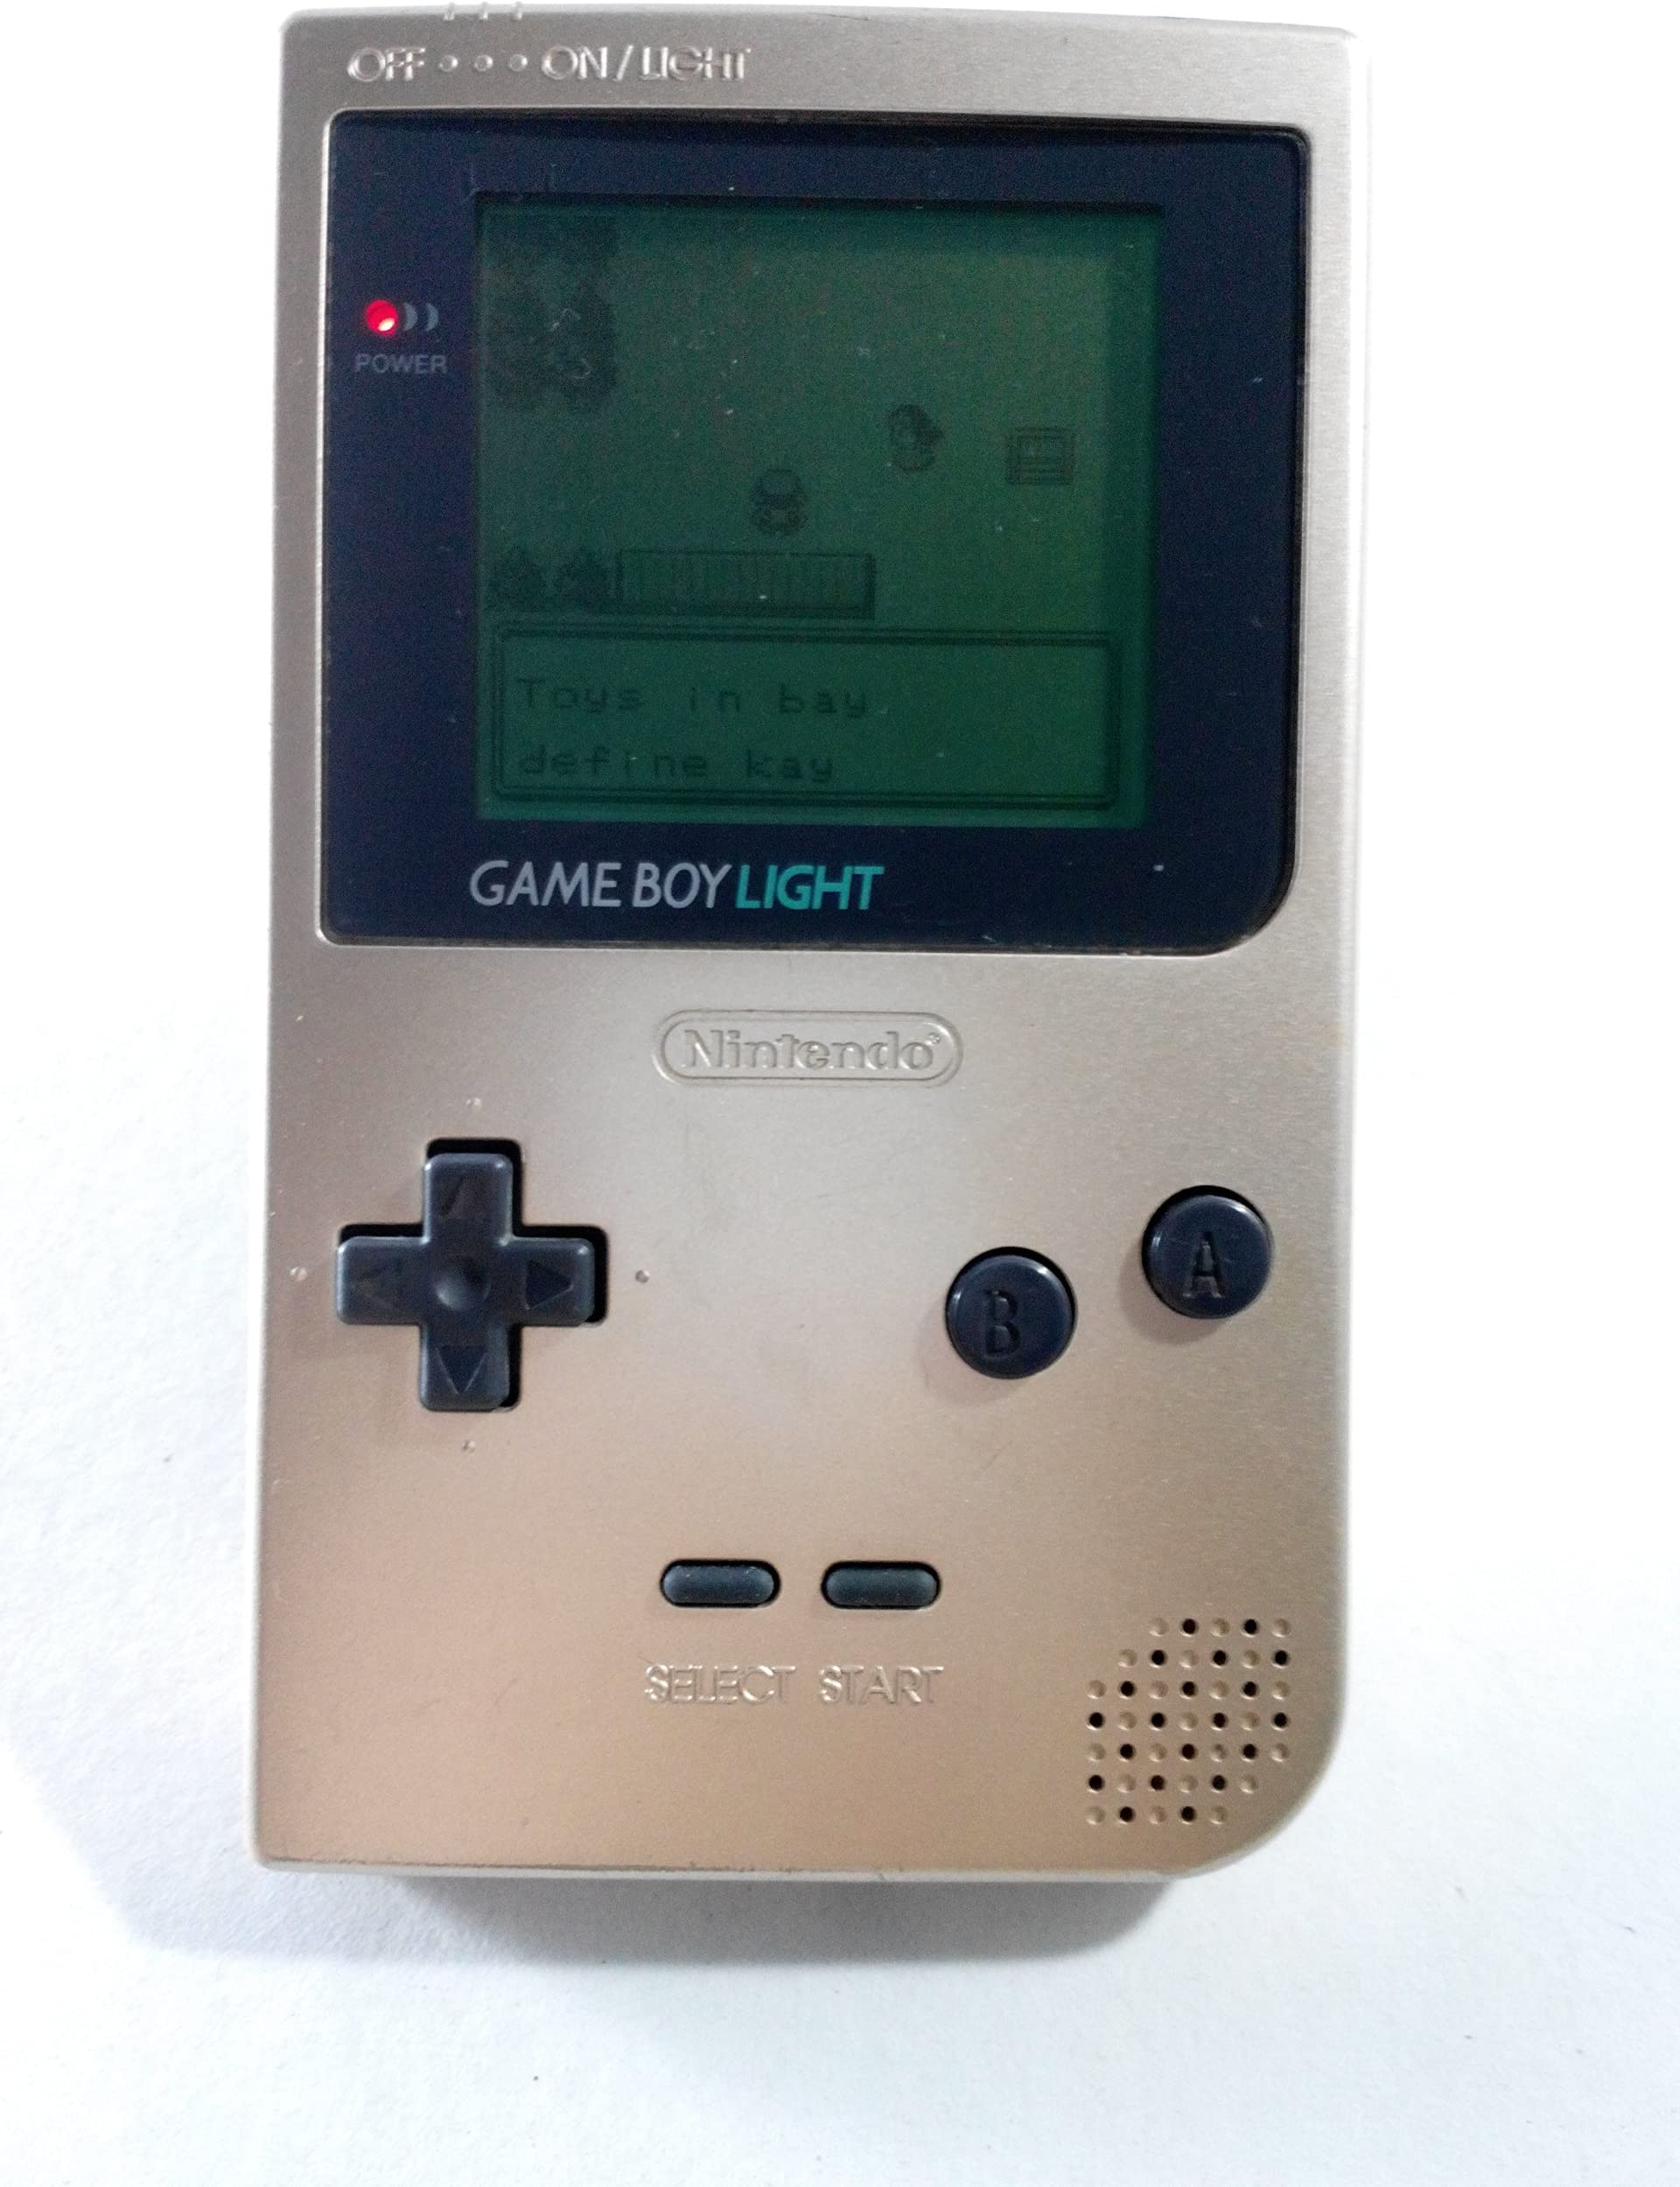 Game boy color kaufen - Image Unavailable